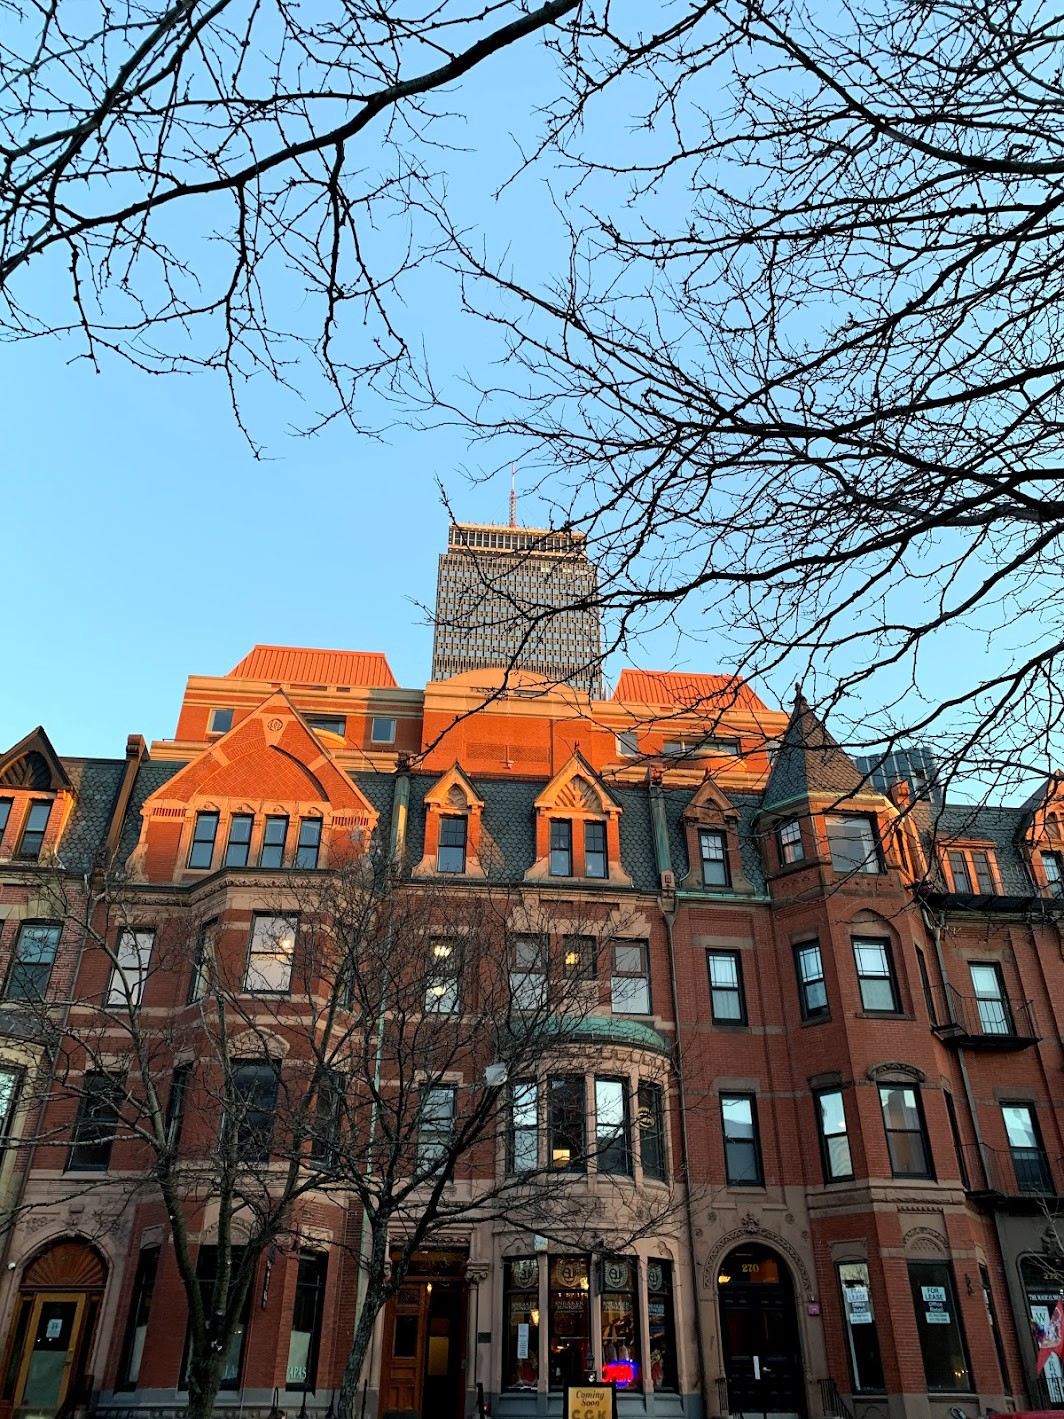 Brownstone buildings and a high-rise at sunset